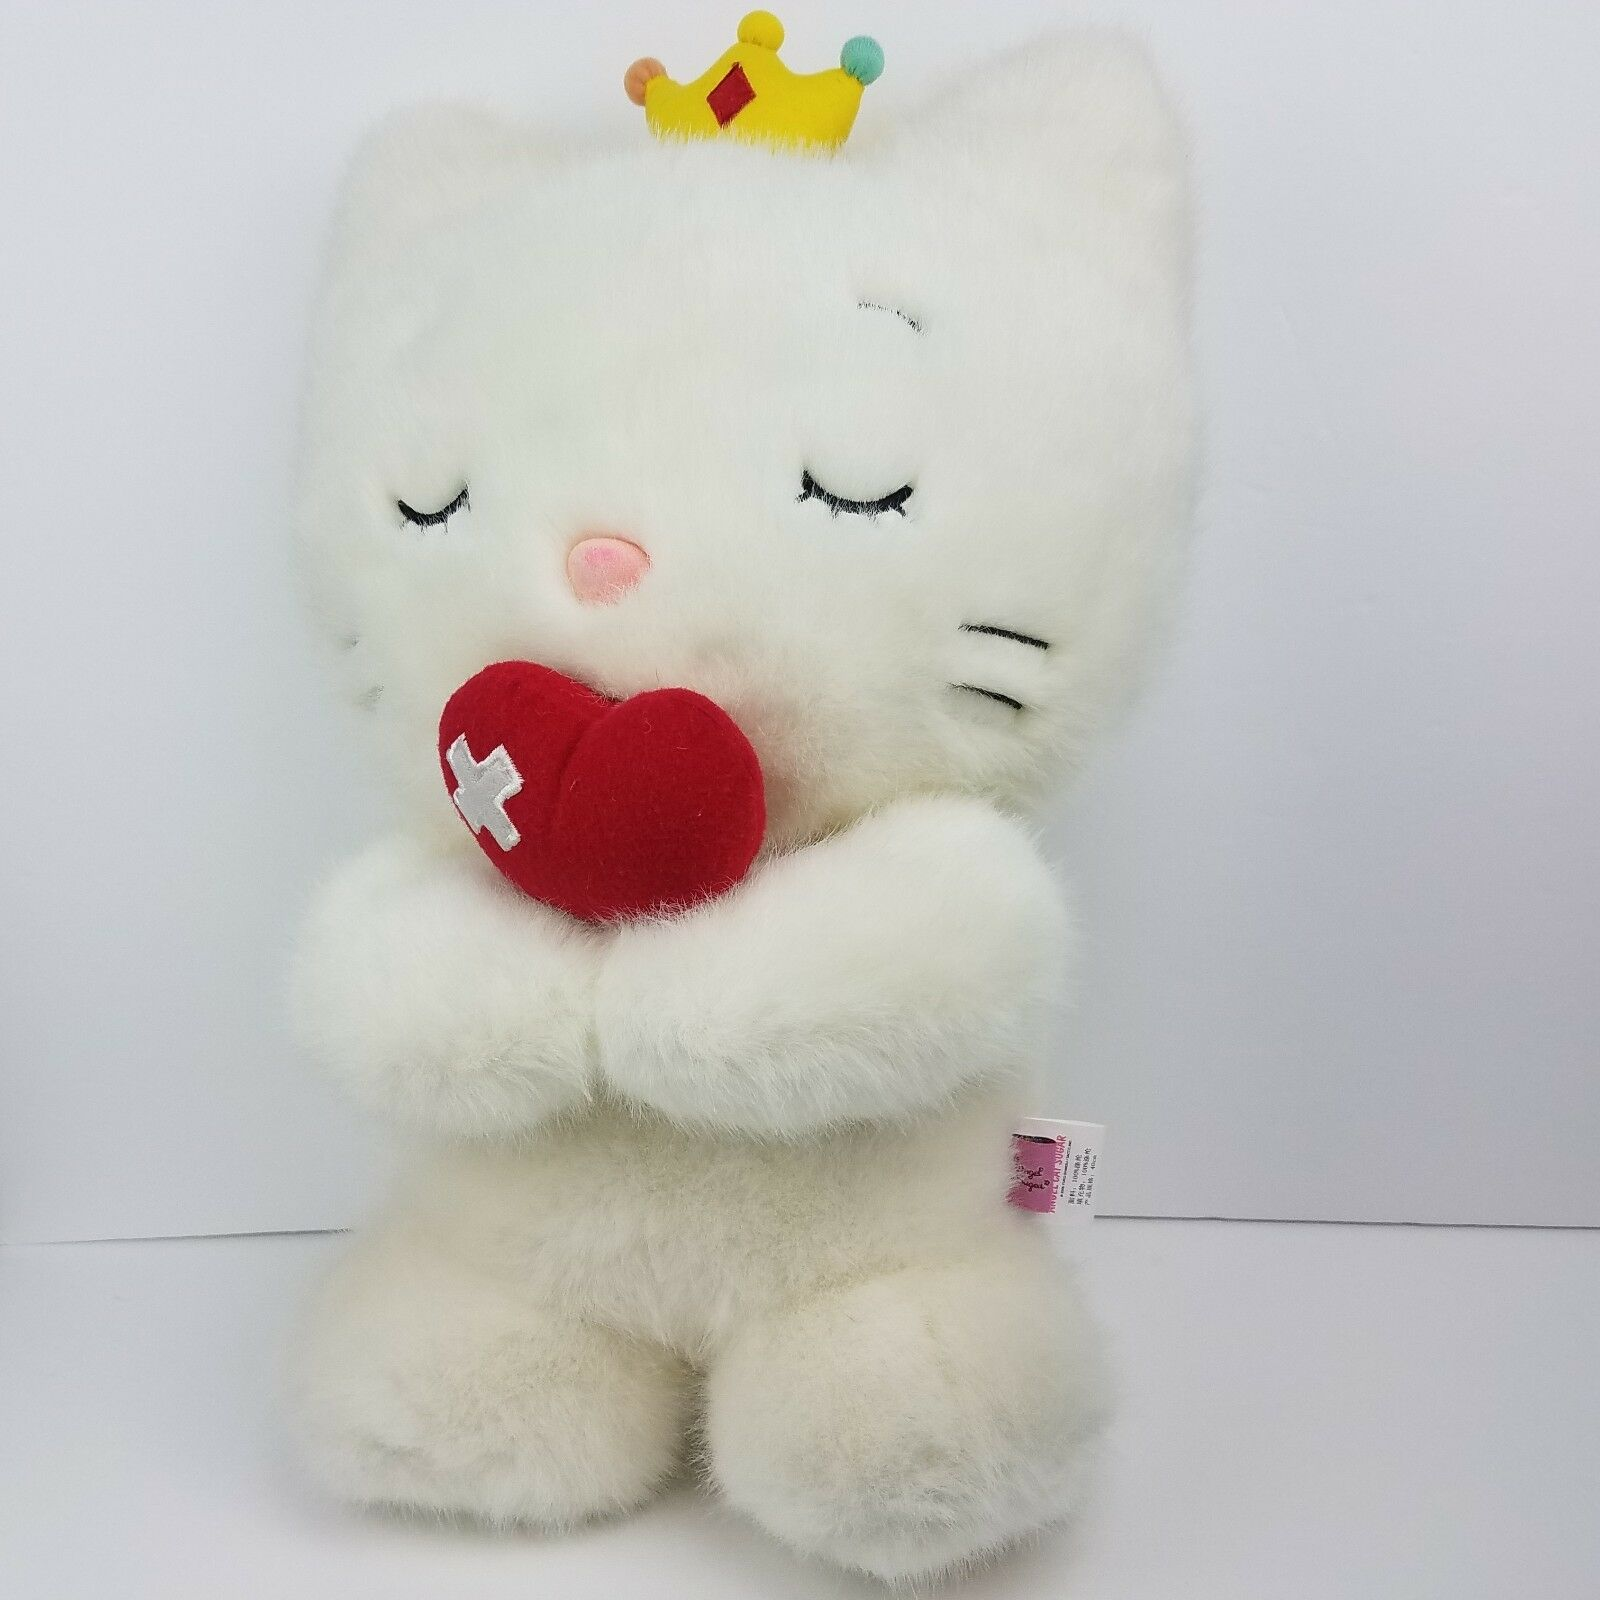 VERY RARE Large 18  ANGEL CAT SUGAR SUGAR SUGAR 2008 Yuko Shimizu Plush Japan Plush EXC d317ca